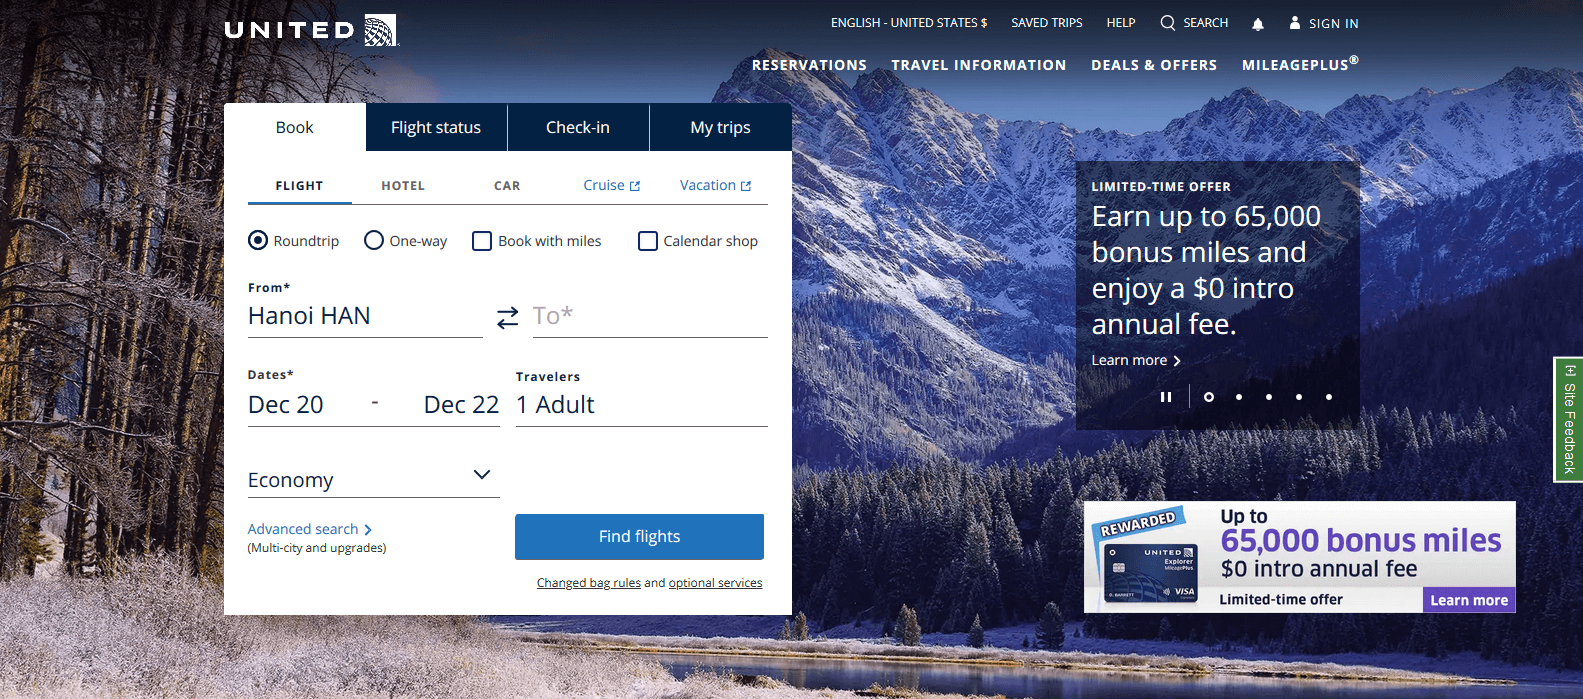 United Airlines Web Page Examples